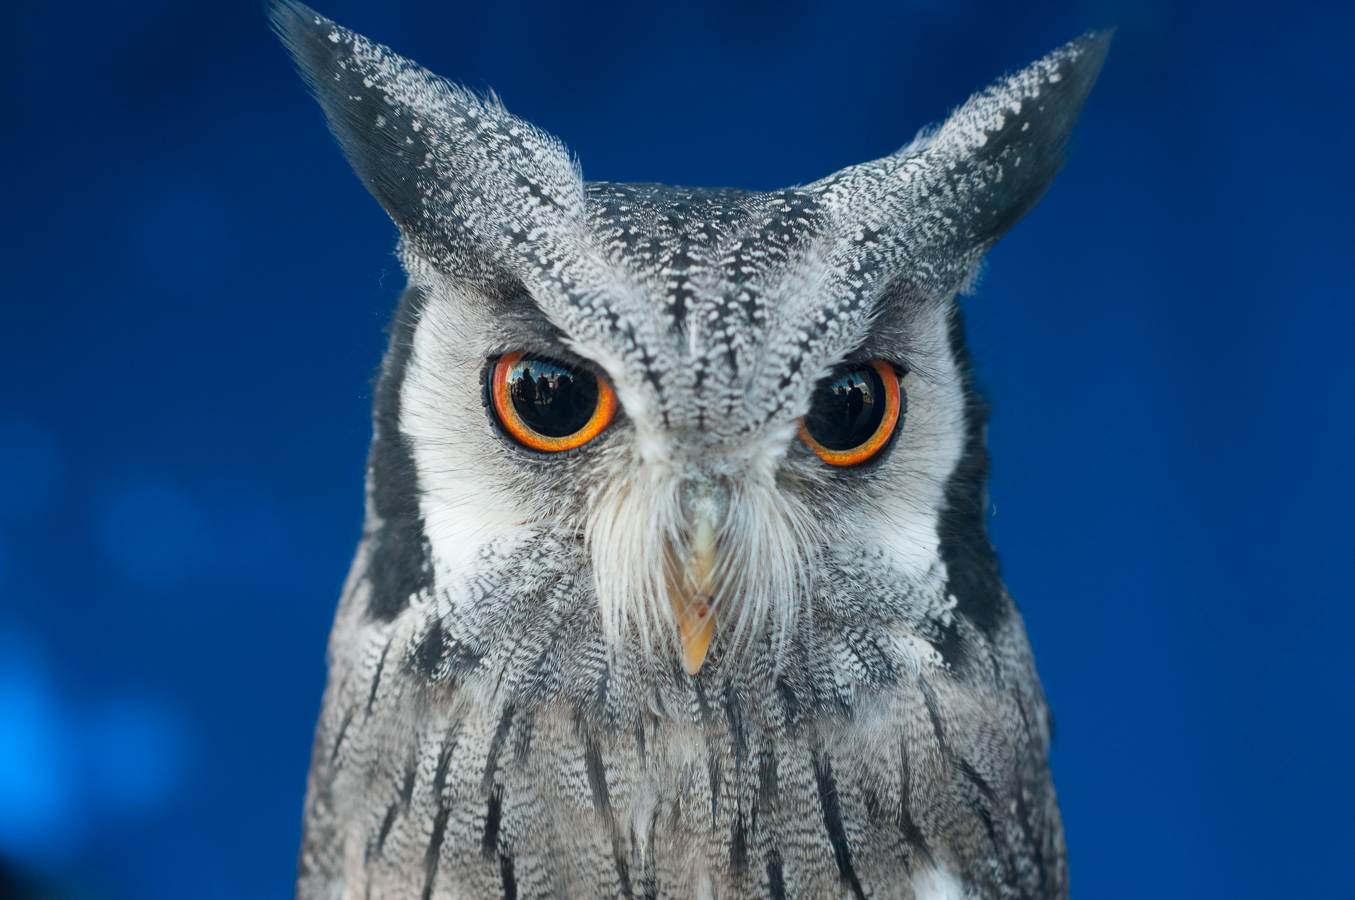 owl-eyes-portrait.jpg